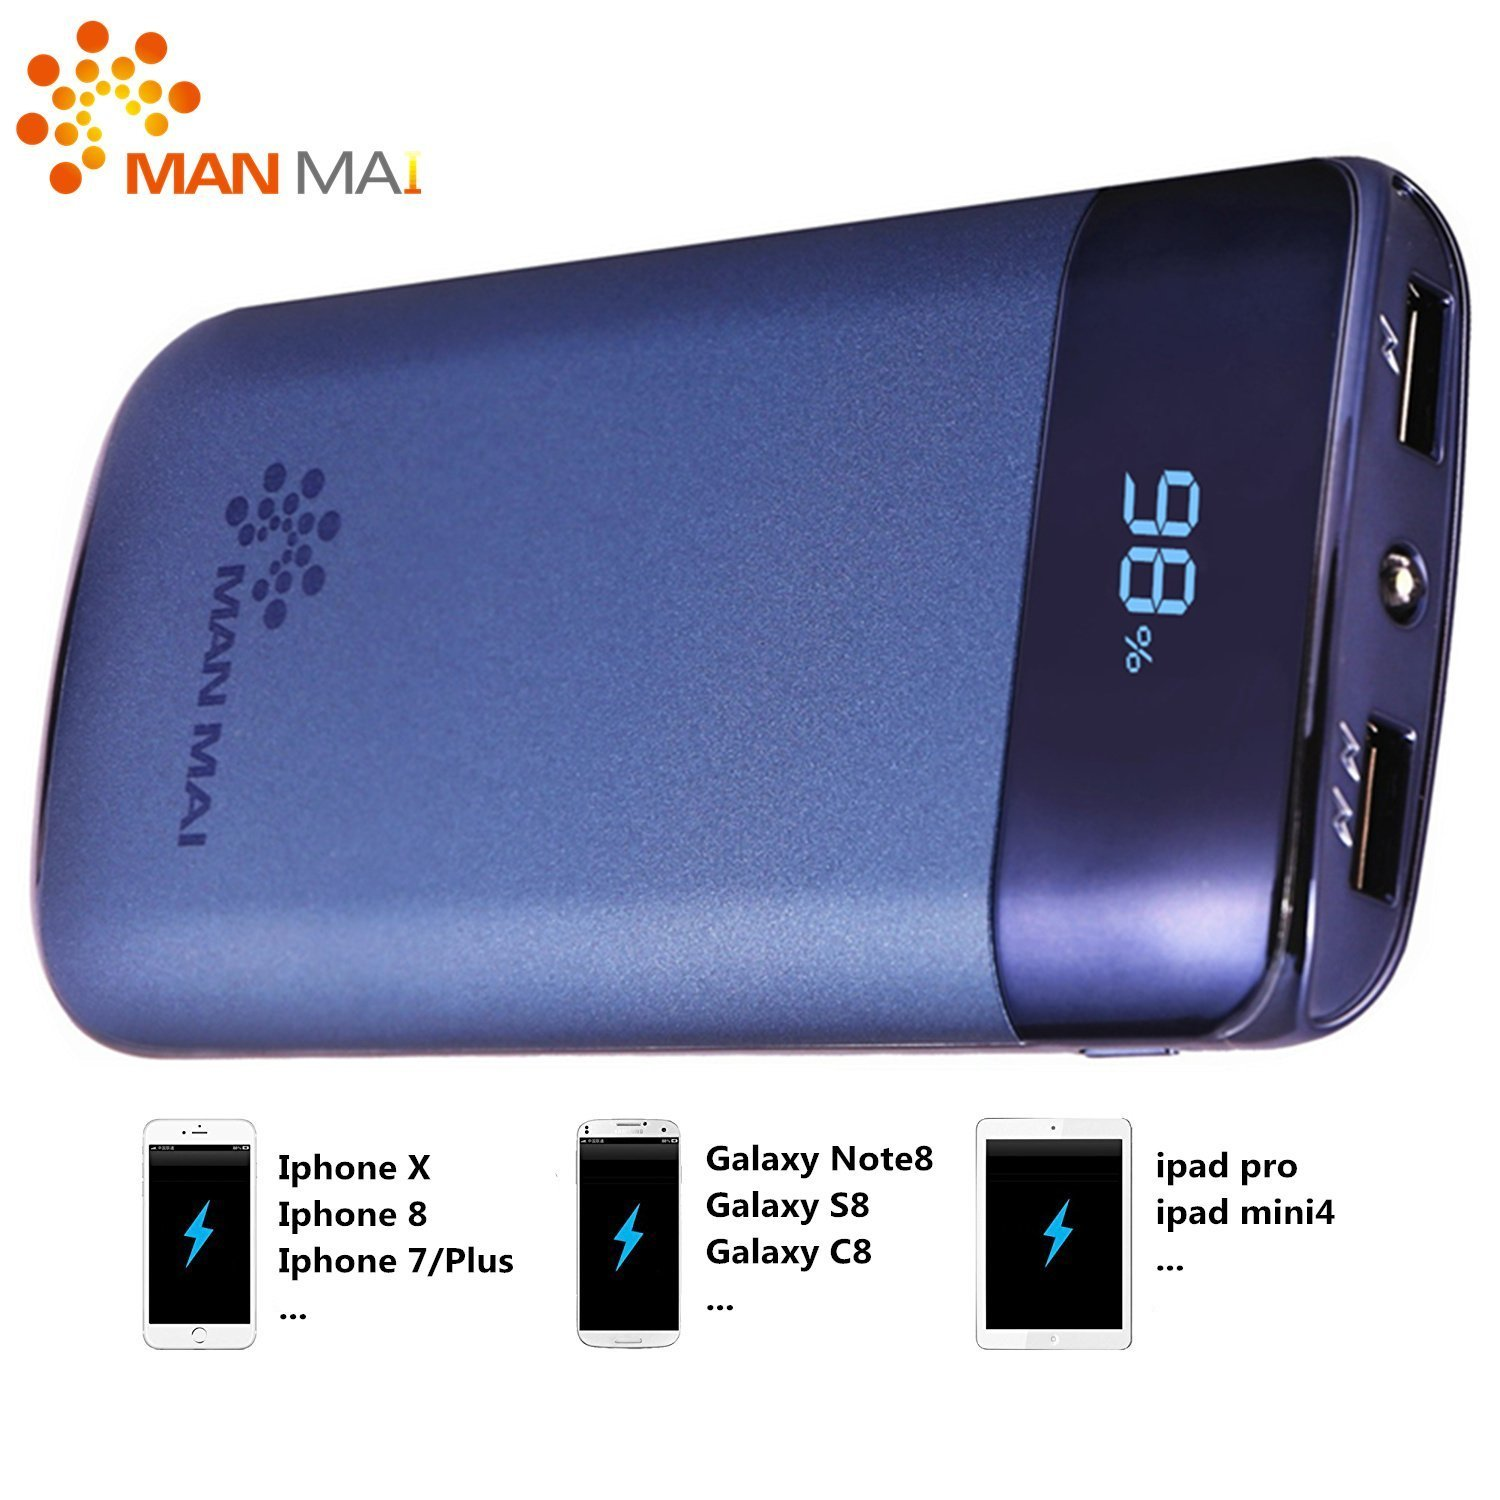 KUPPET 20000mAh Power Bank (Dual USB Port, 3.1A Total) External Portable Charger Battery Pack Portable Charger with LED Flashlight for iPhone 7, iPhone 8,iphone X,iPad Pro, Galaxy S8 Note8 and More by KUPPET (Image #1)